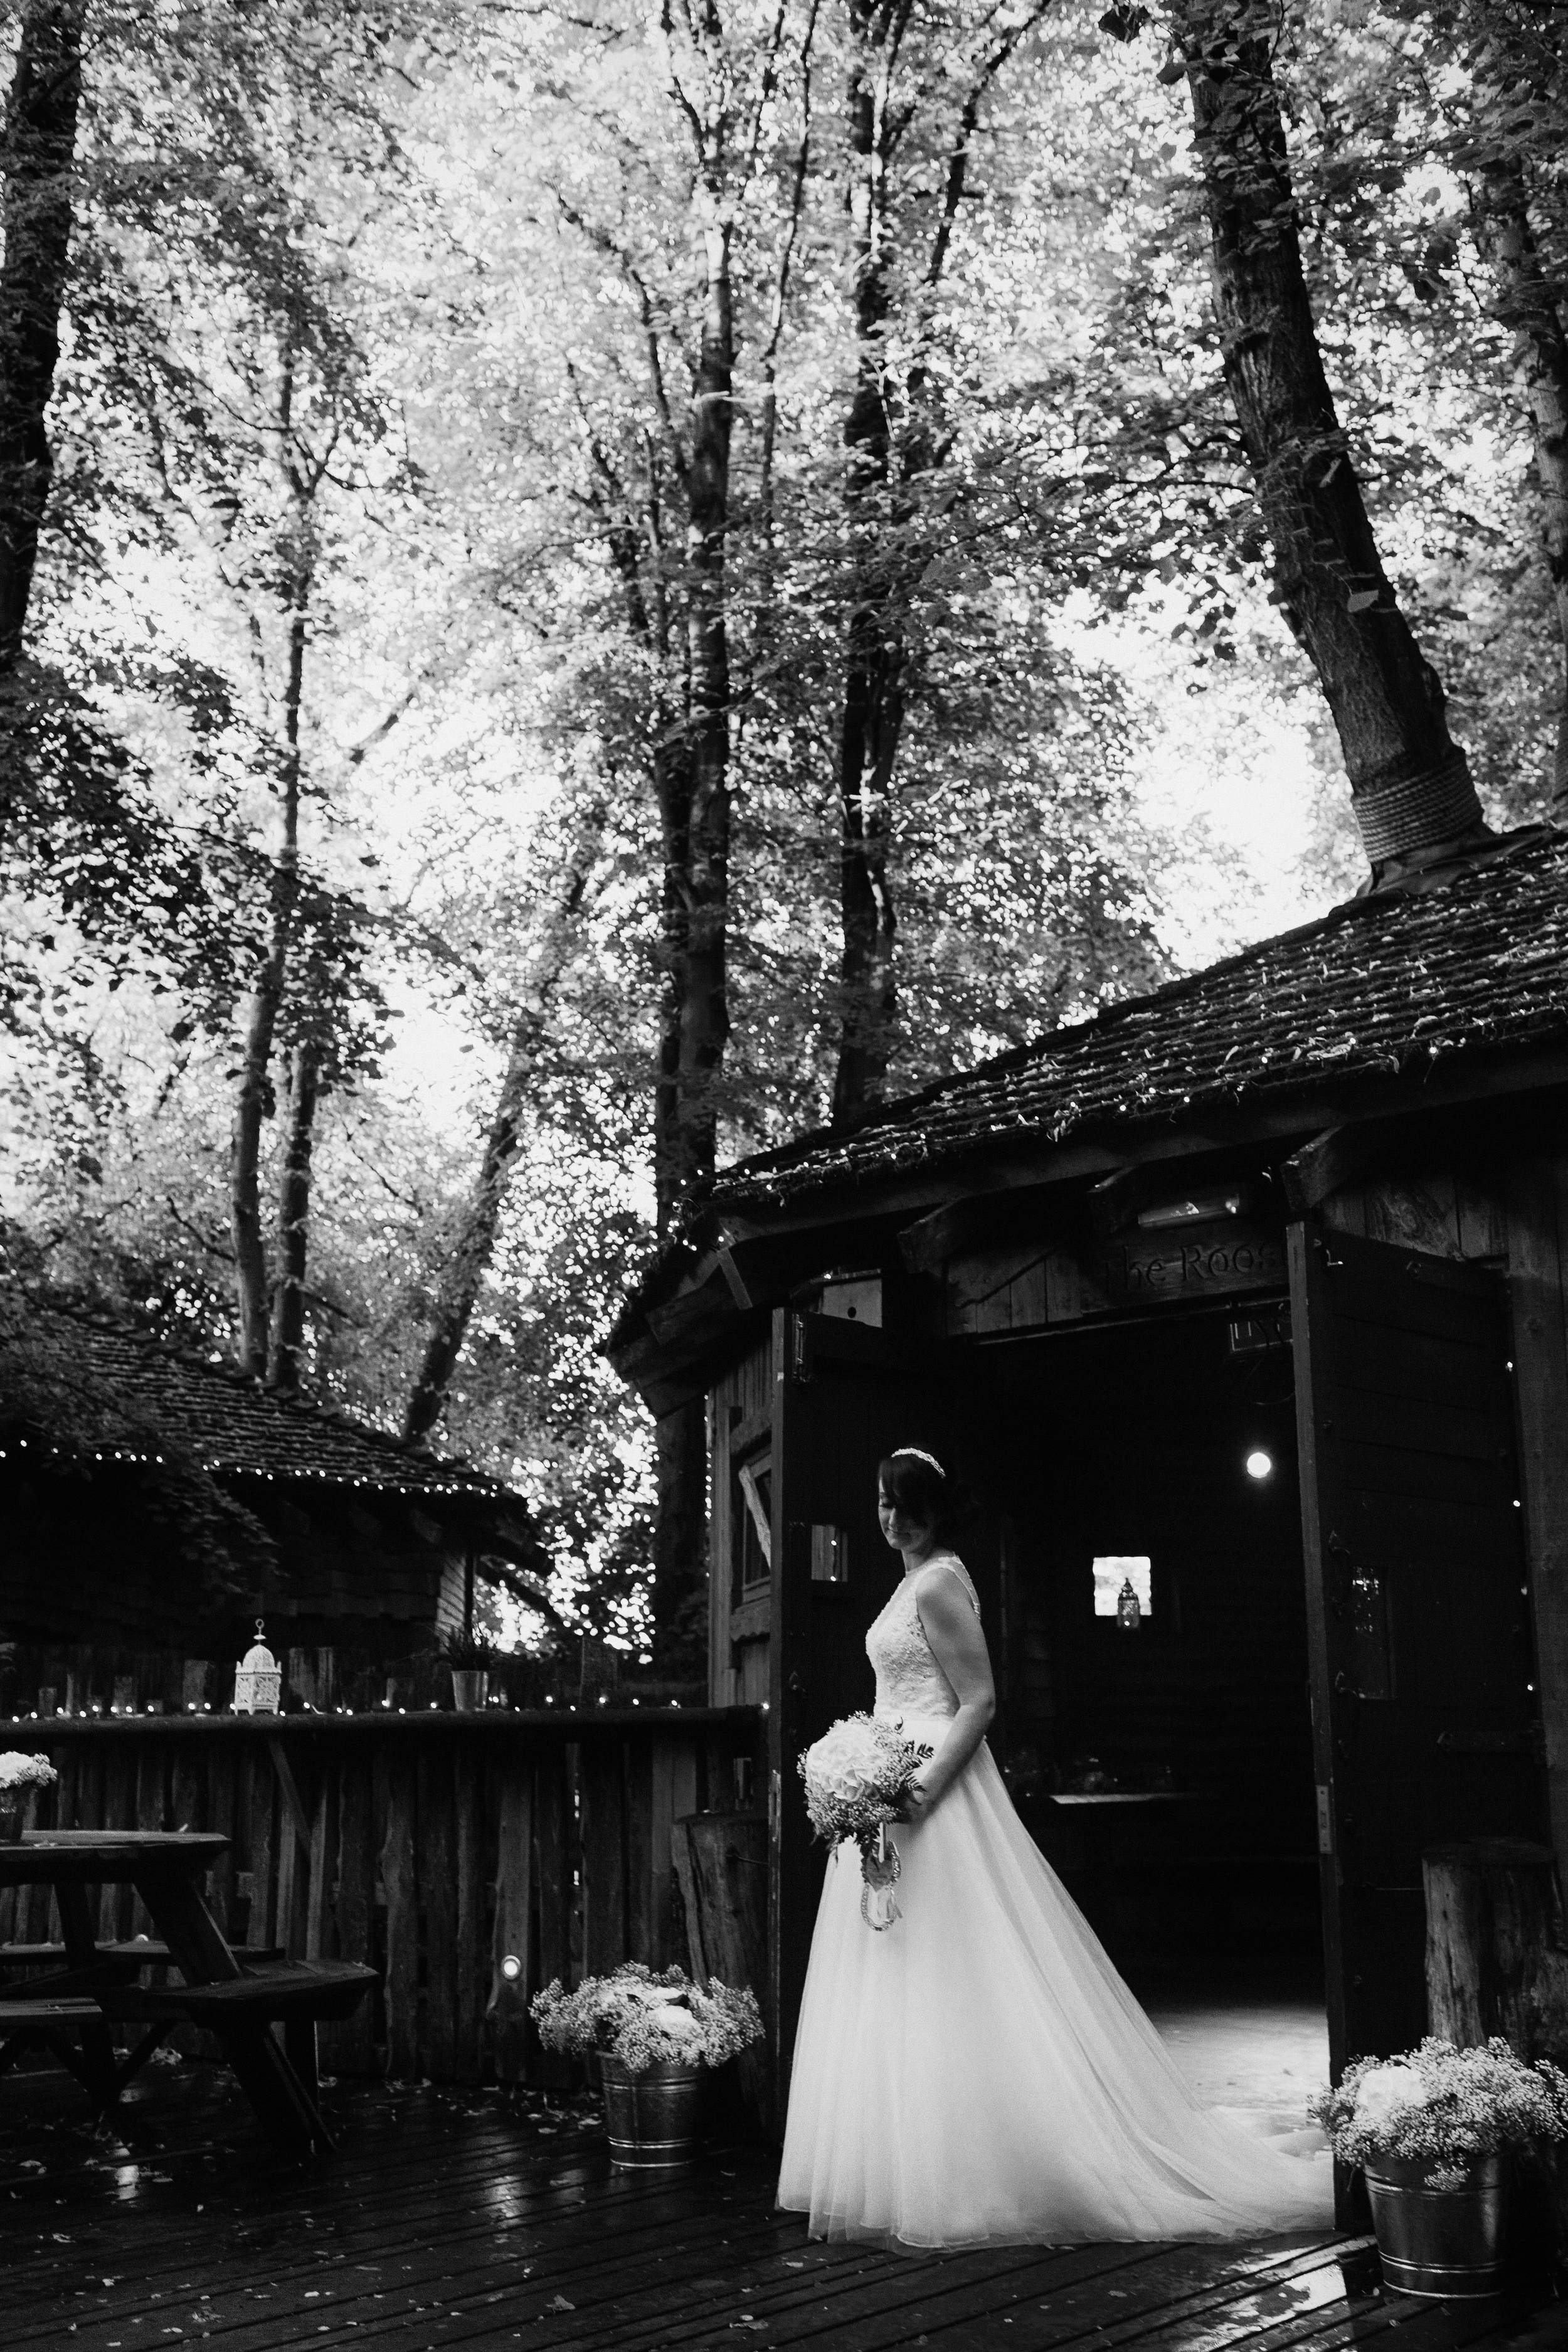 An elegant black and white portrait of the bride at Alnwick Gardens Treehouse, Northumberland